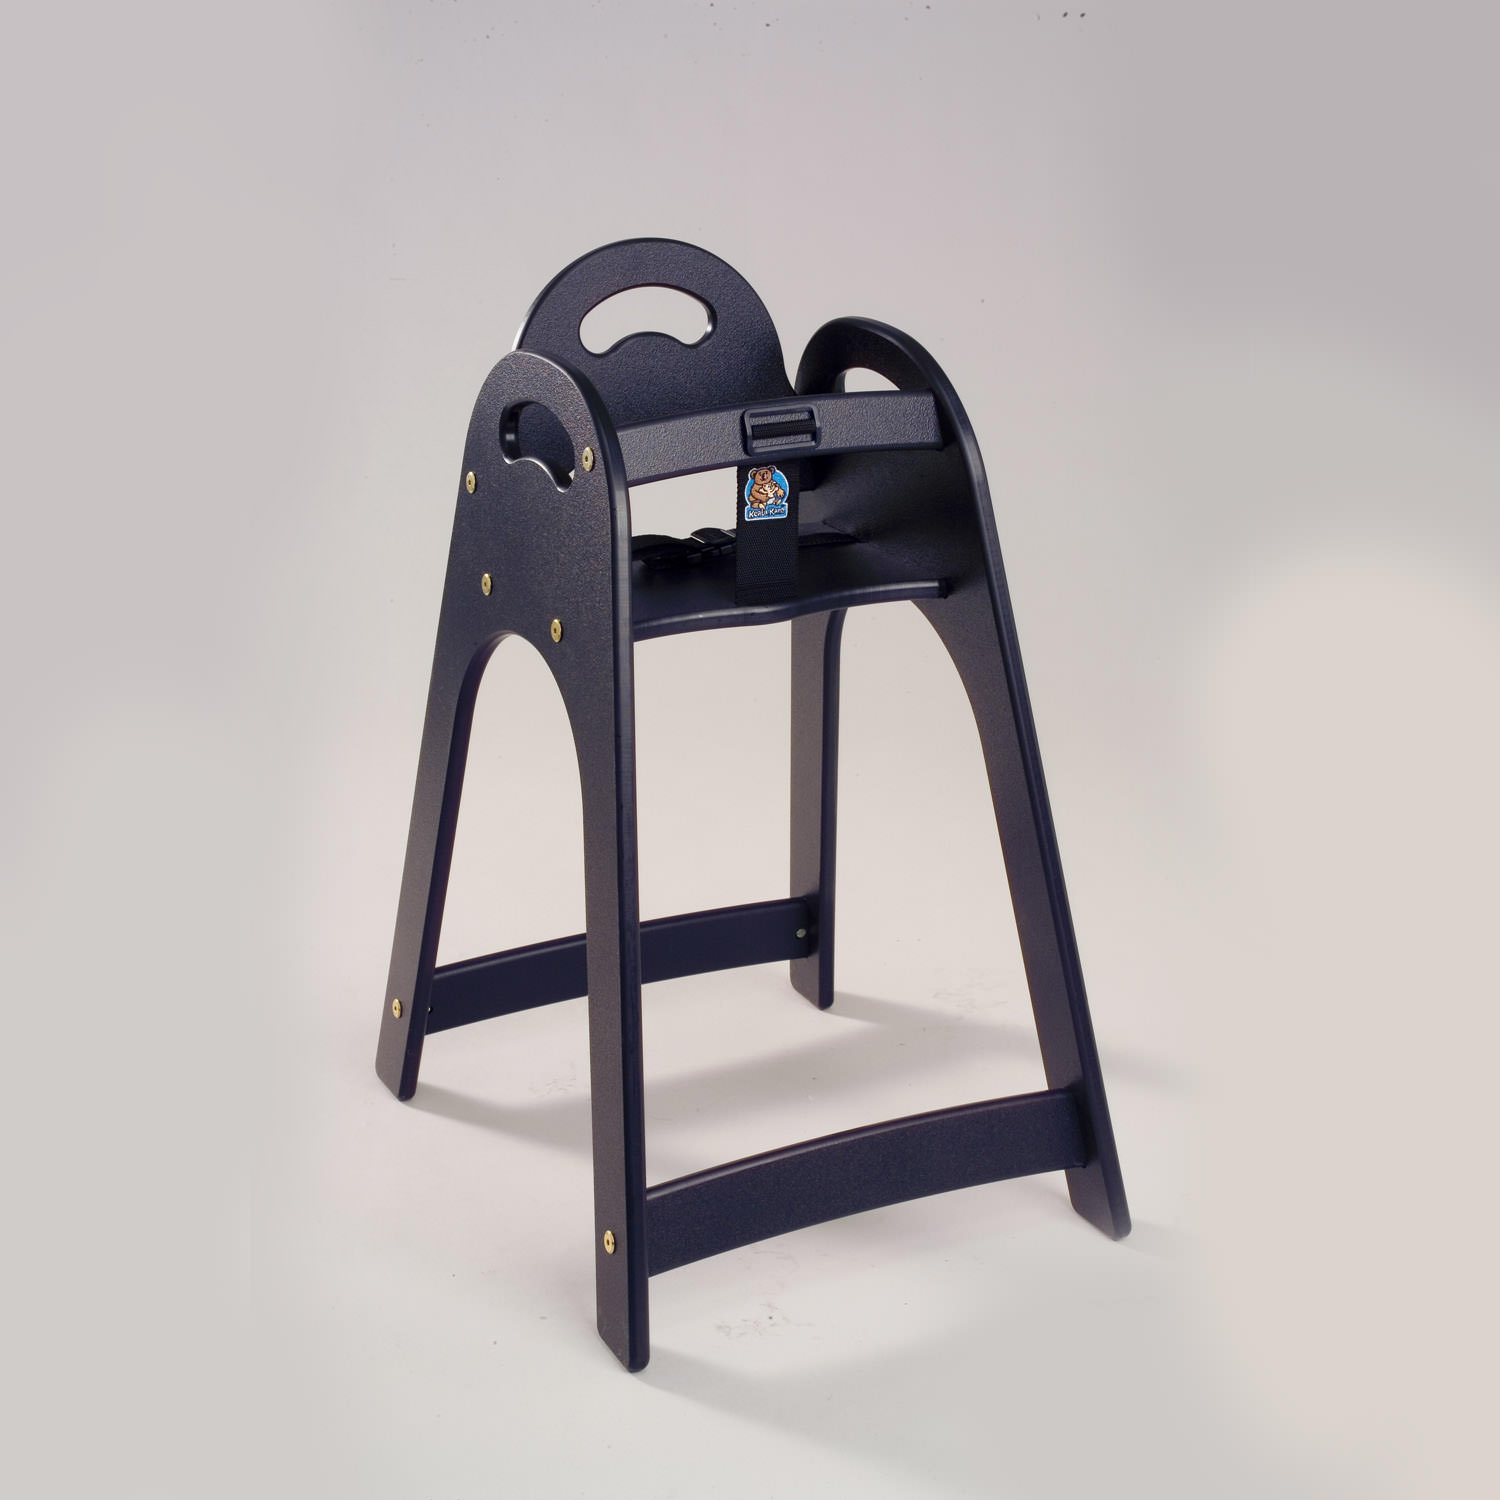 Designer High Chair Koala Kare Designer High Chairs Samrick